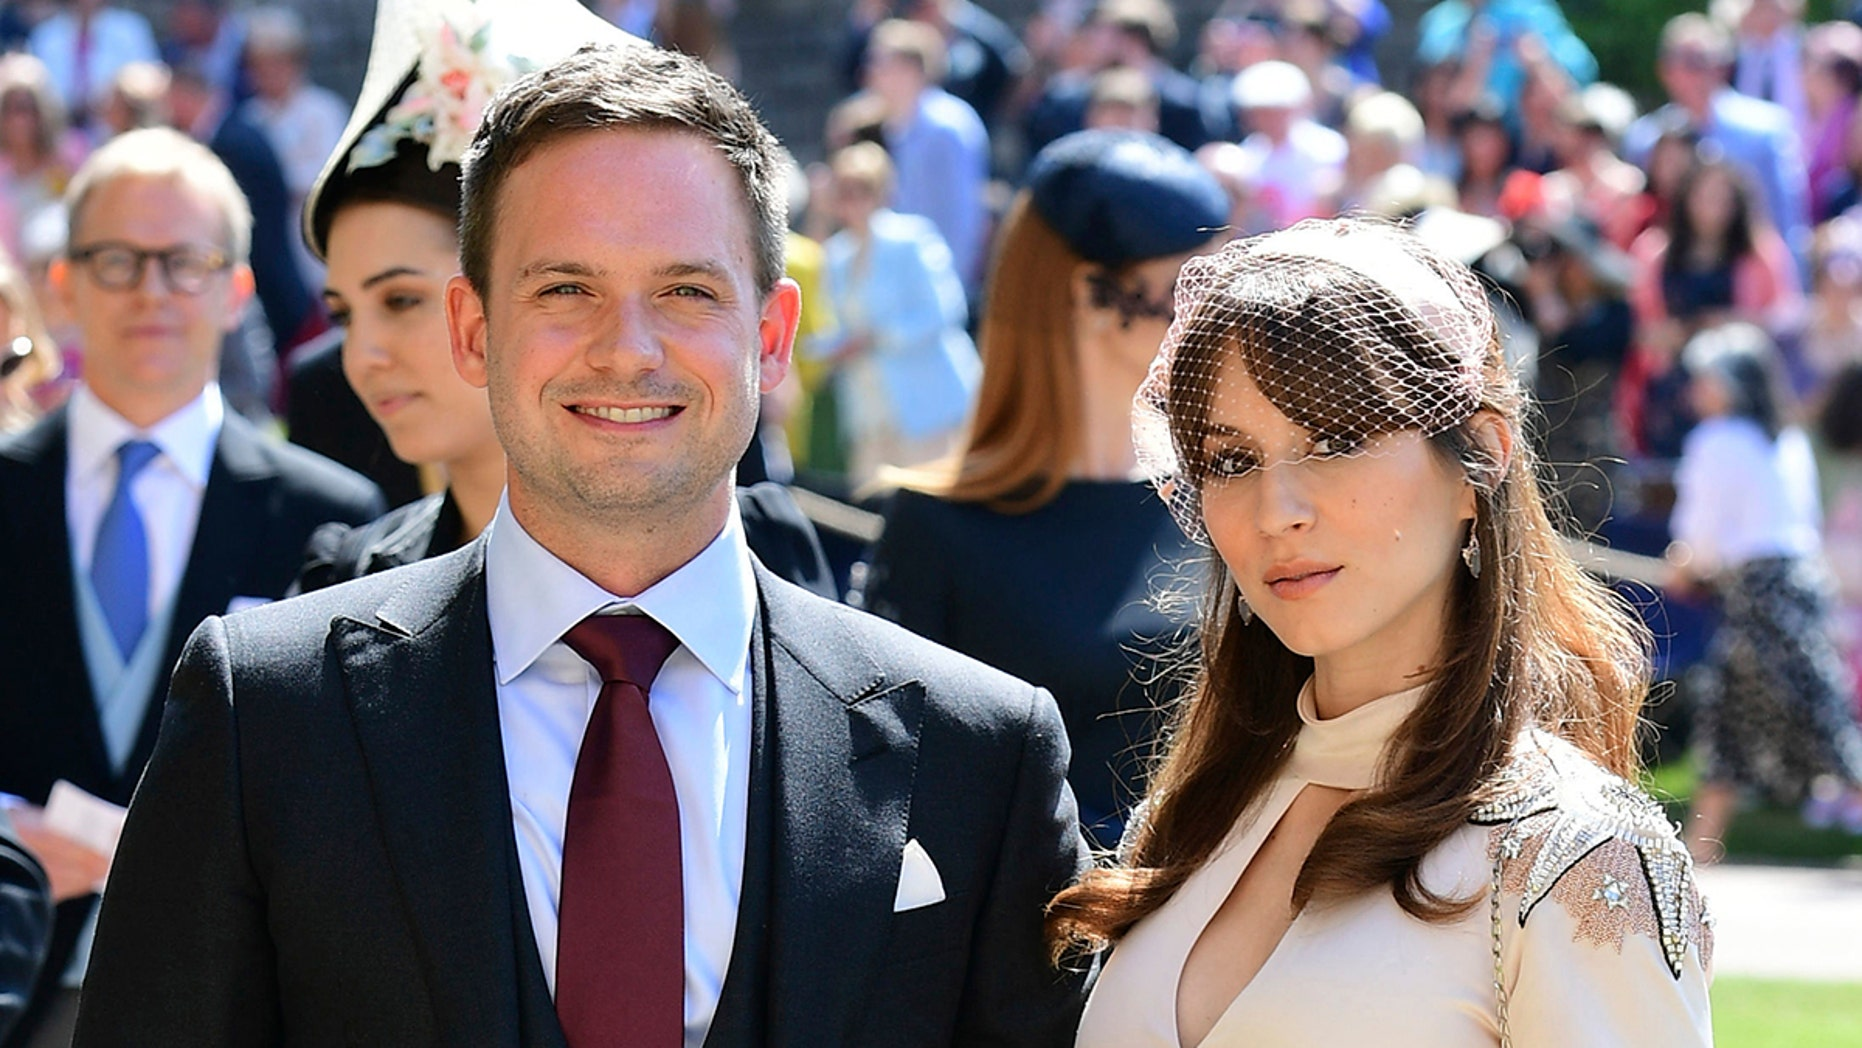 Patrick J. Adams and wife Troian Bellisario arrive a for the wedding ceremony of Prince Harry and Meghan Markle at St. George's Chapel in Windsor Castle in Windsor, near London, England, Saturday, May 19, 2018. (Ian West/pool photo via AP)